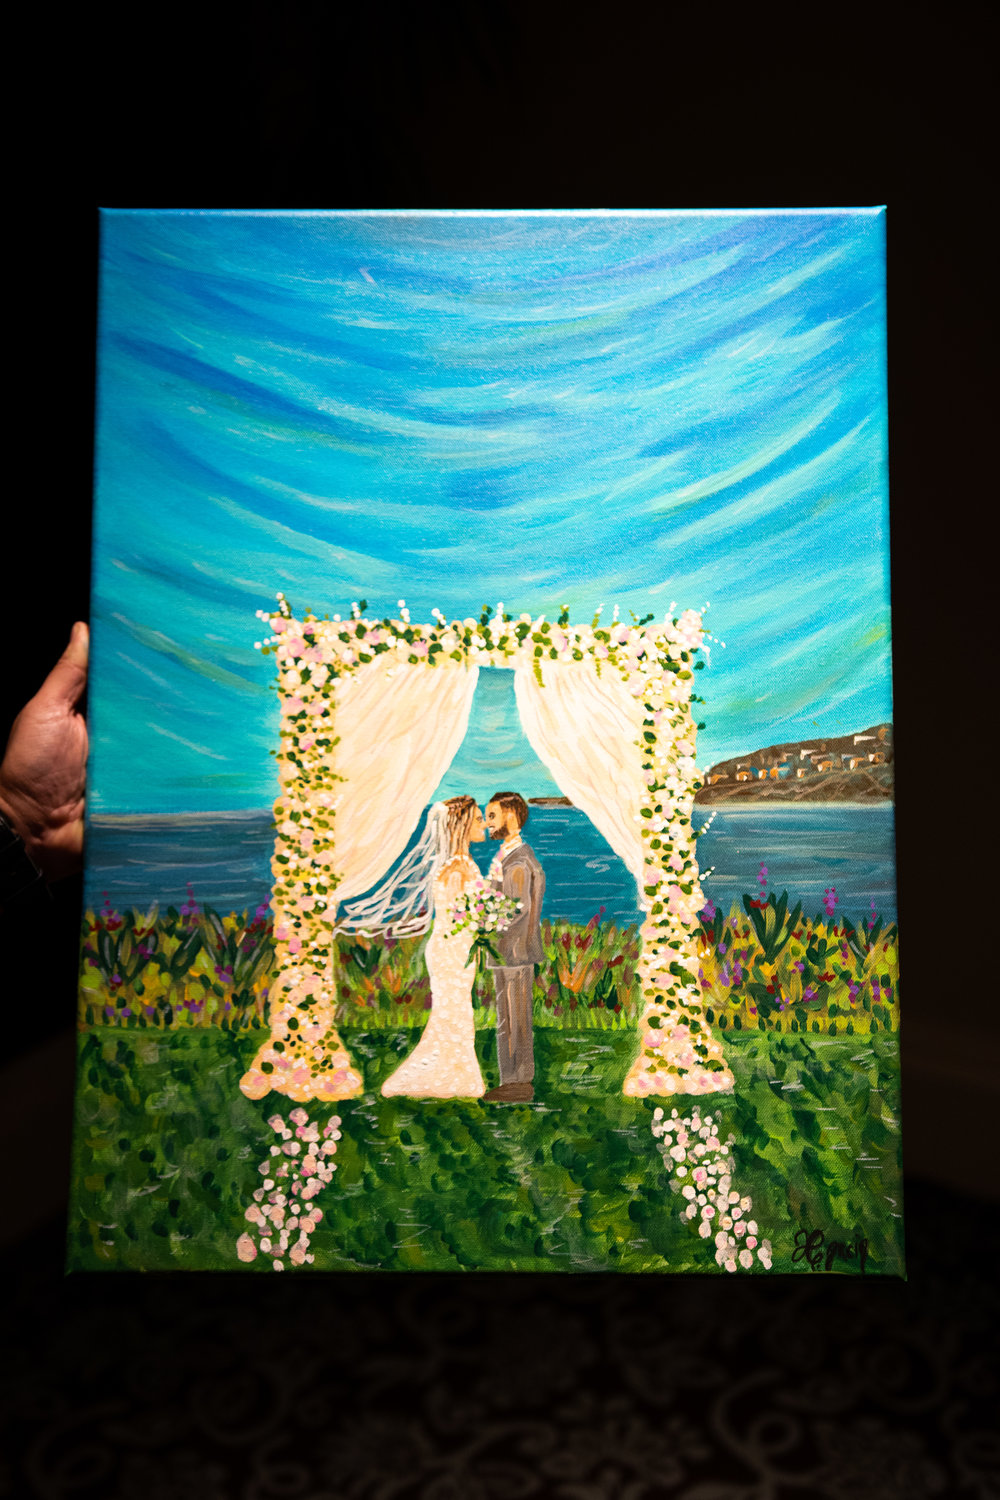 This was painted at the Ritz Carlton in Dana Point California for Mr and Mrs Perez.